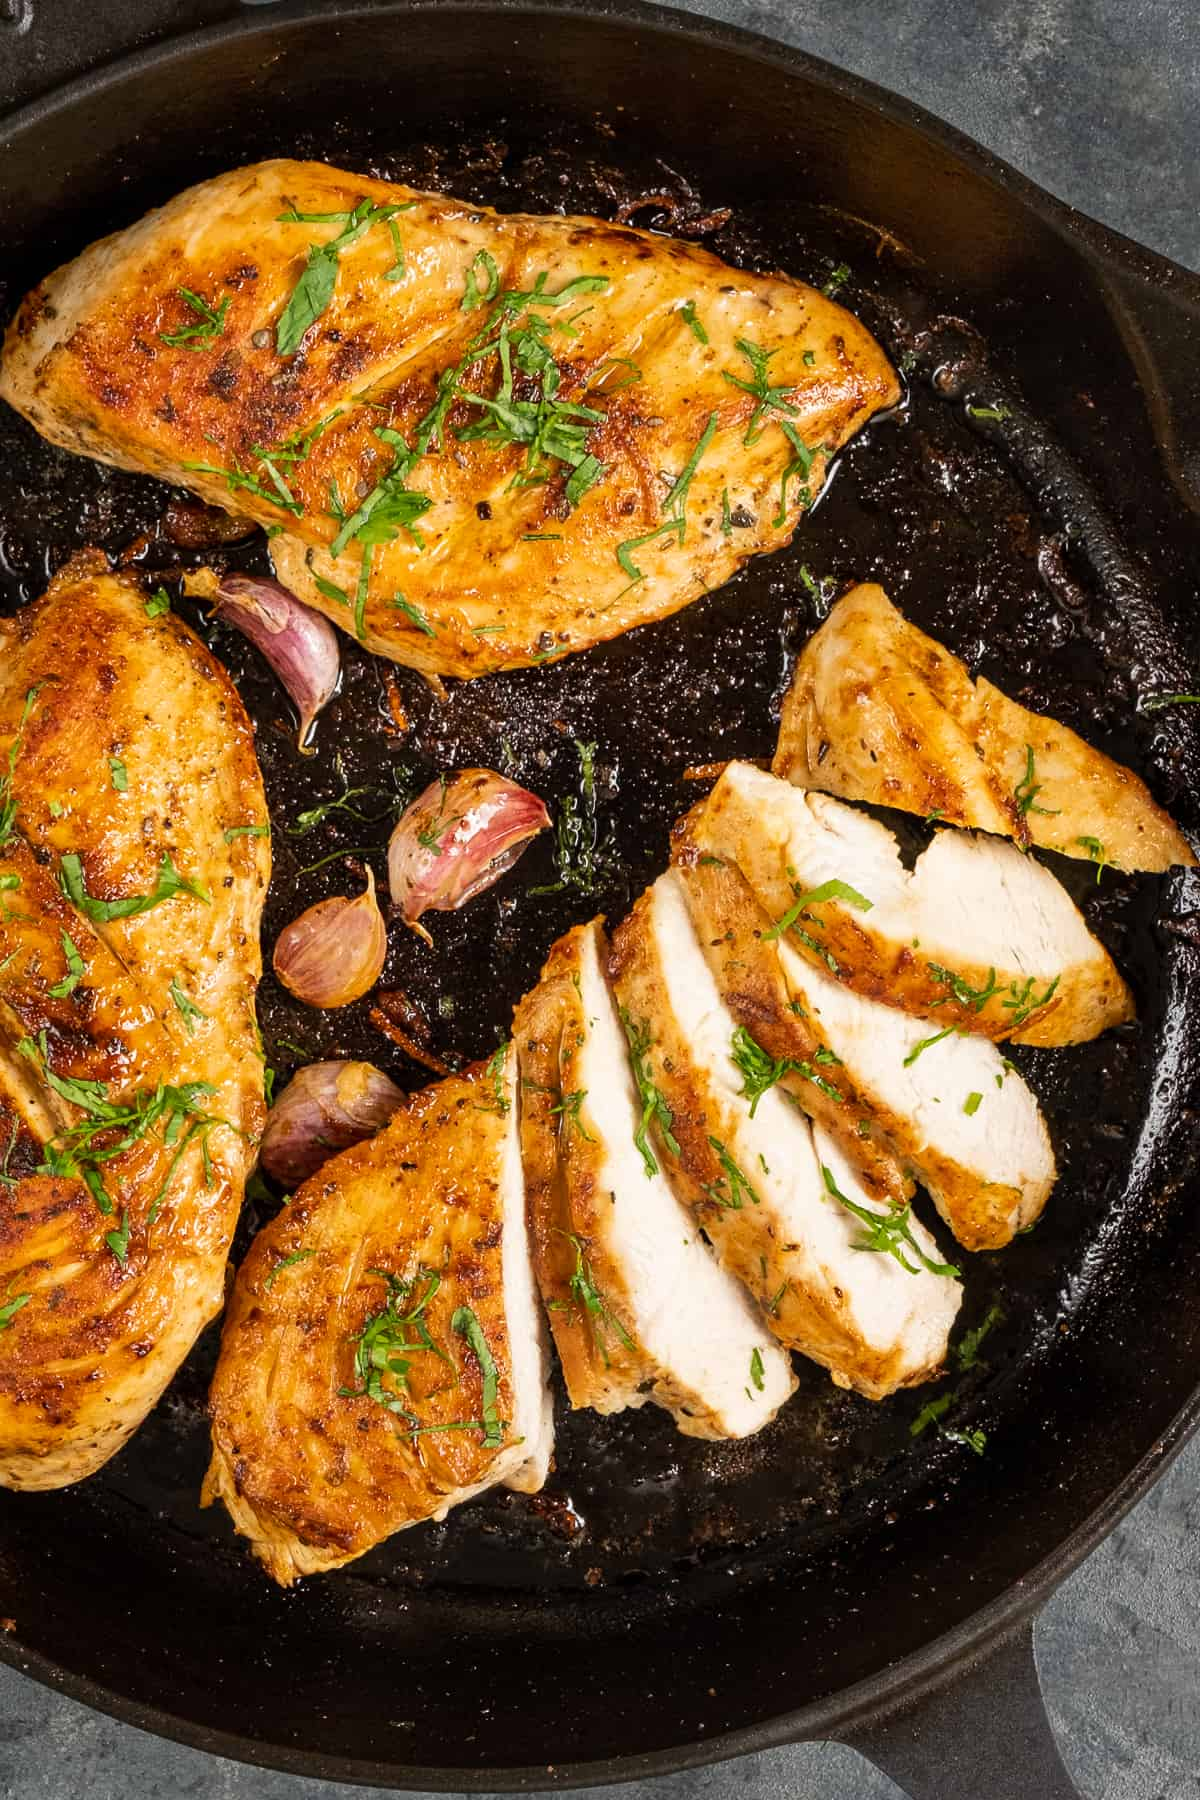 Three pieces golden brown chicken breasts, one sliced, in a cast iron pan garnished with chopped parsley and garlic cloves on the side.